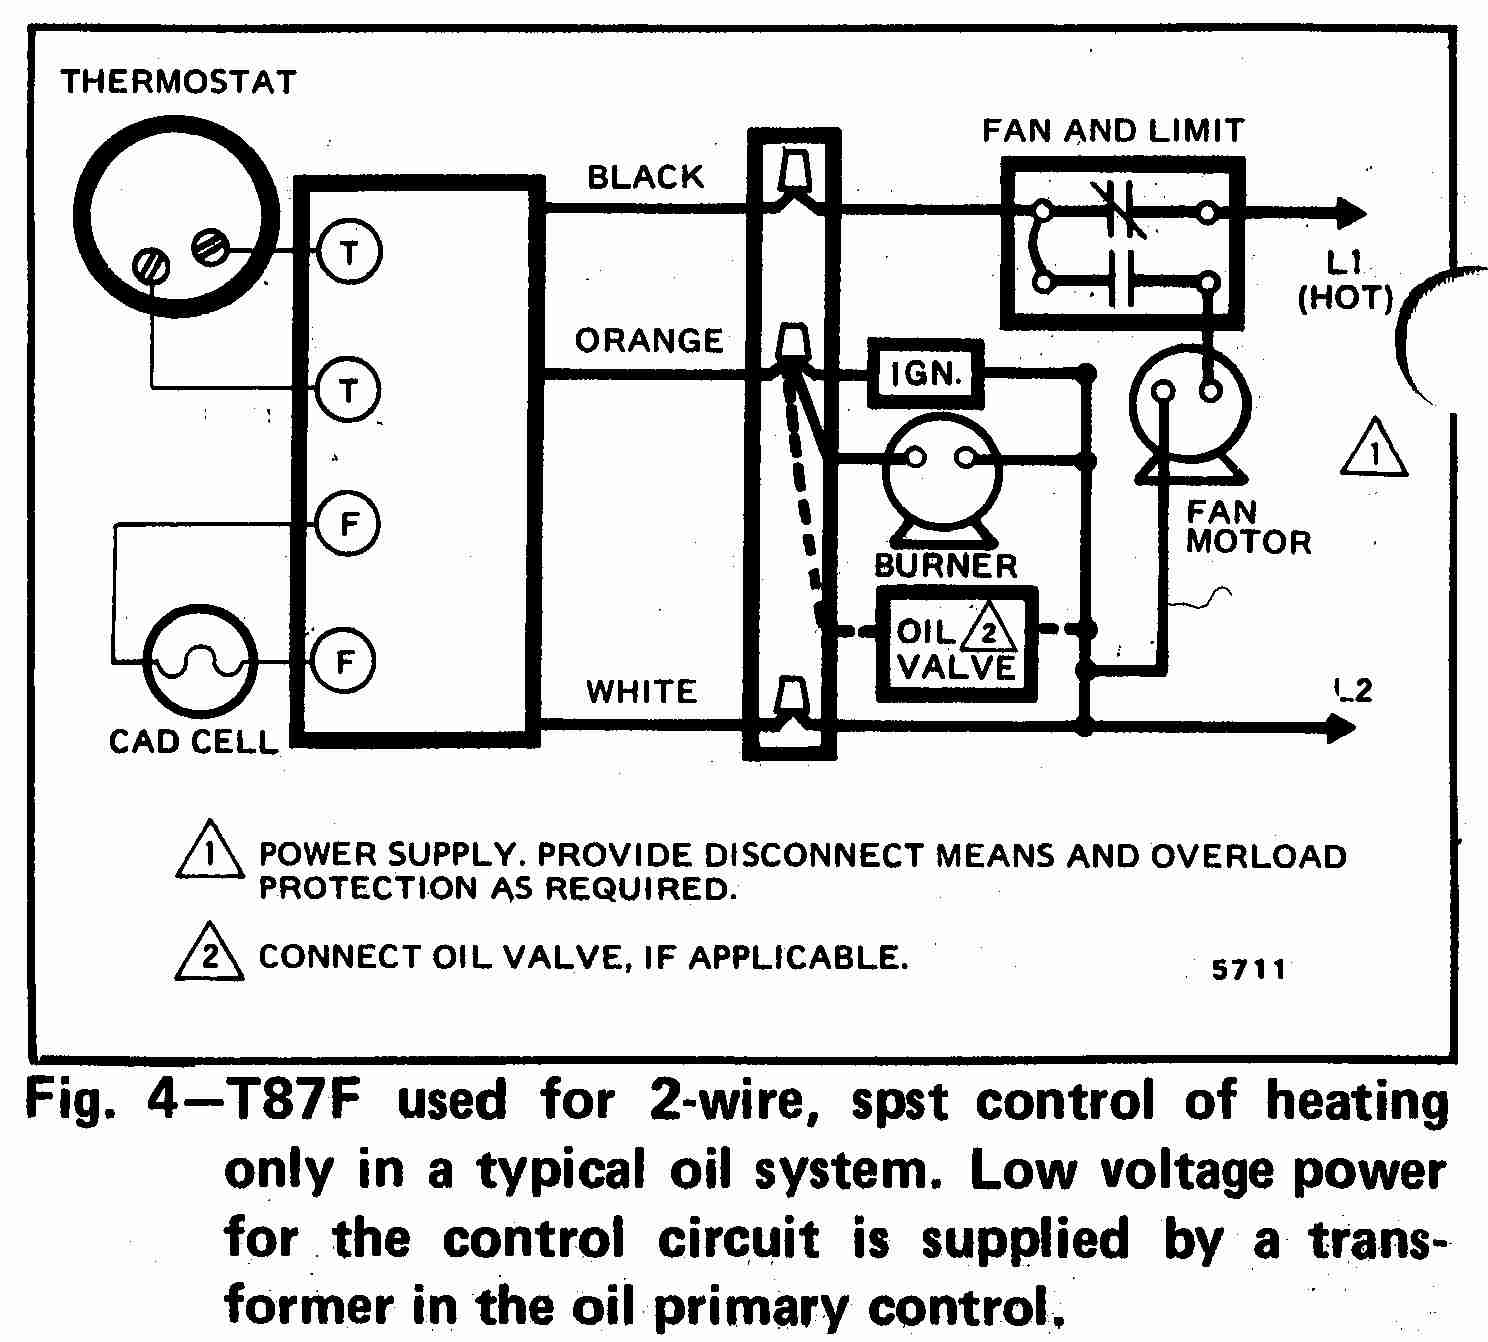 Wiring Schematics Library Dt1 250 Dt1b Enduro Motorcycle Diagram Honeywell T87f Thermostat For 2 Wire Spst Control Of Heating Only In